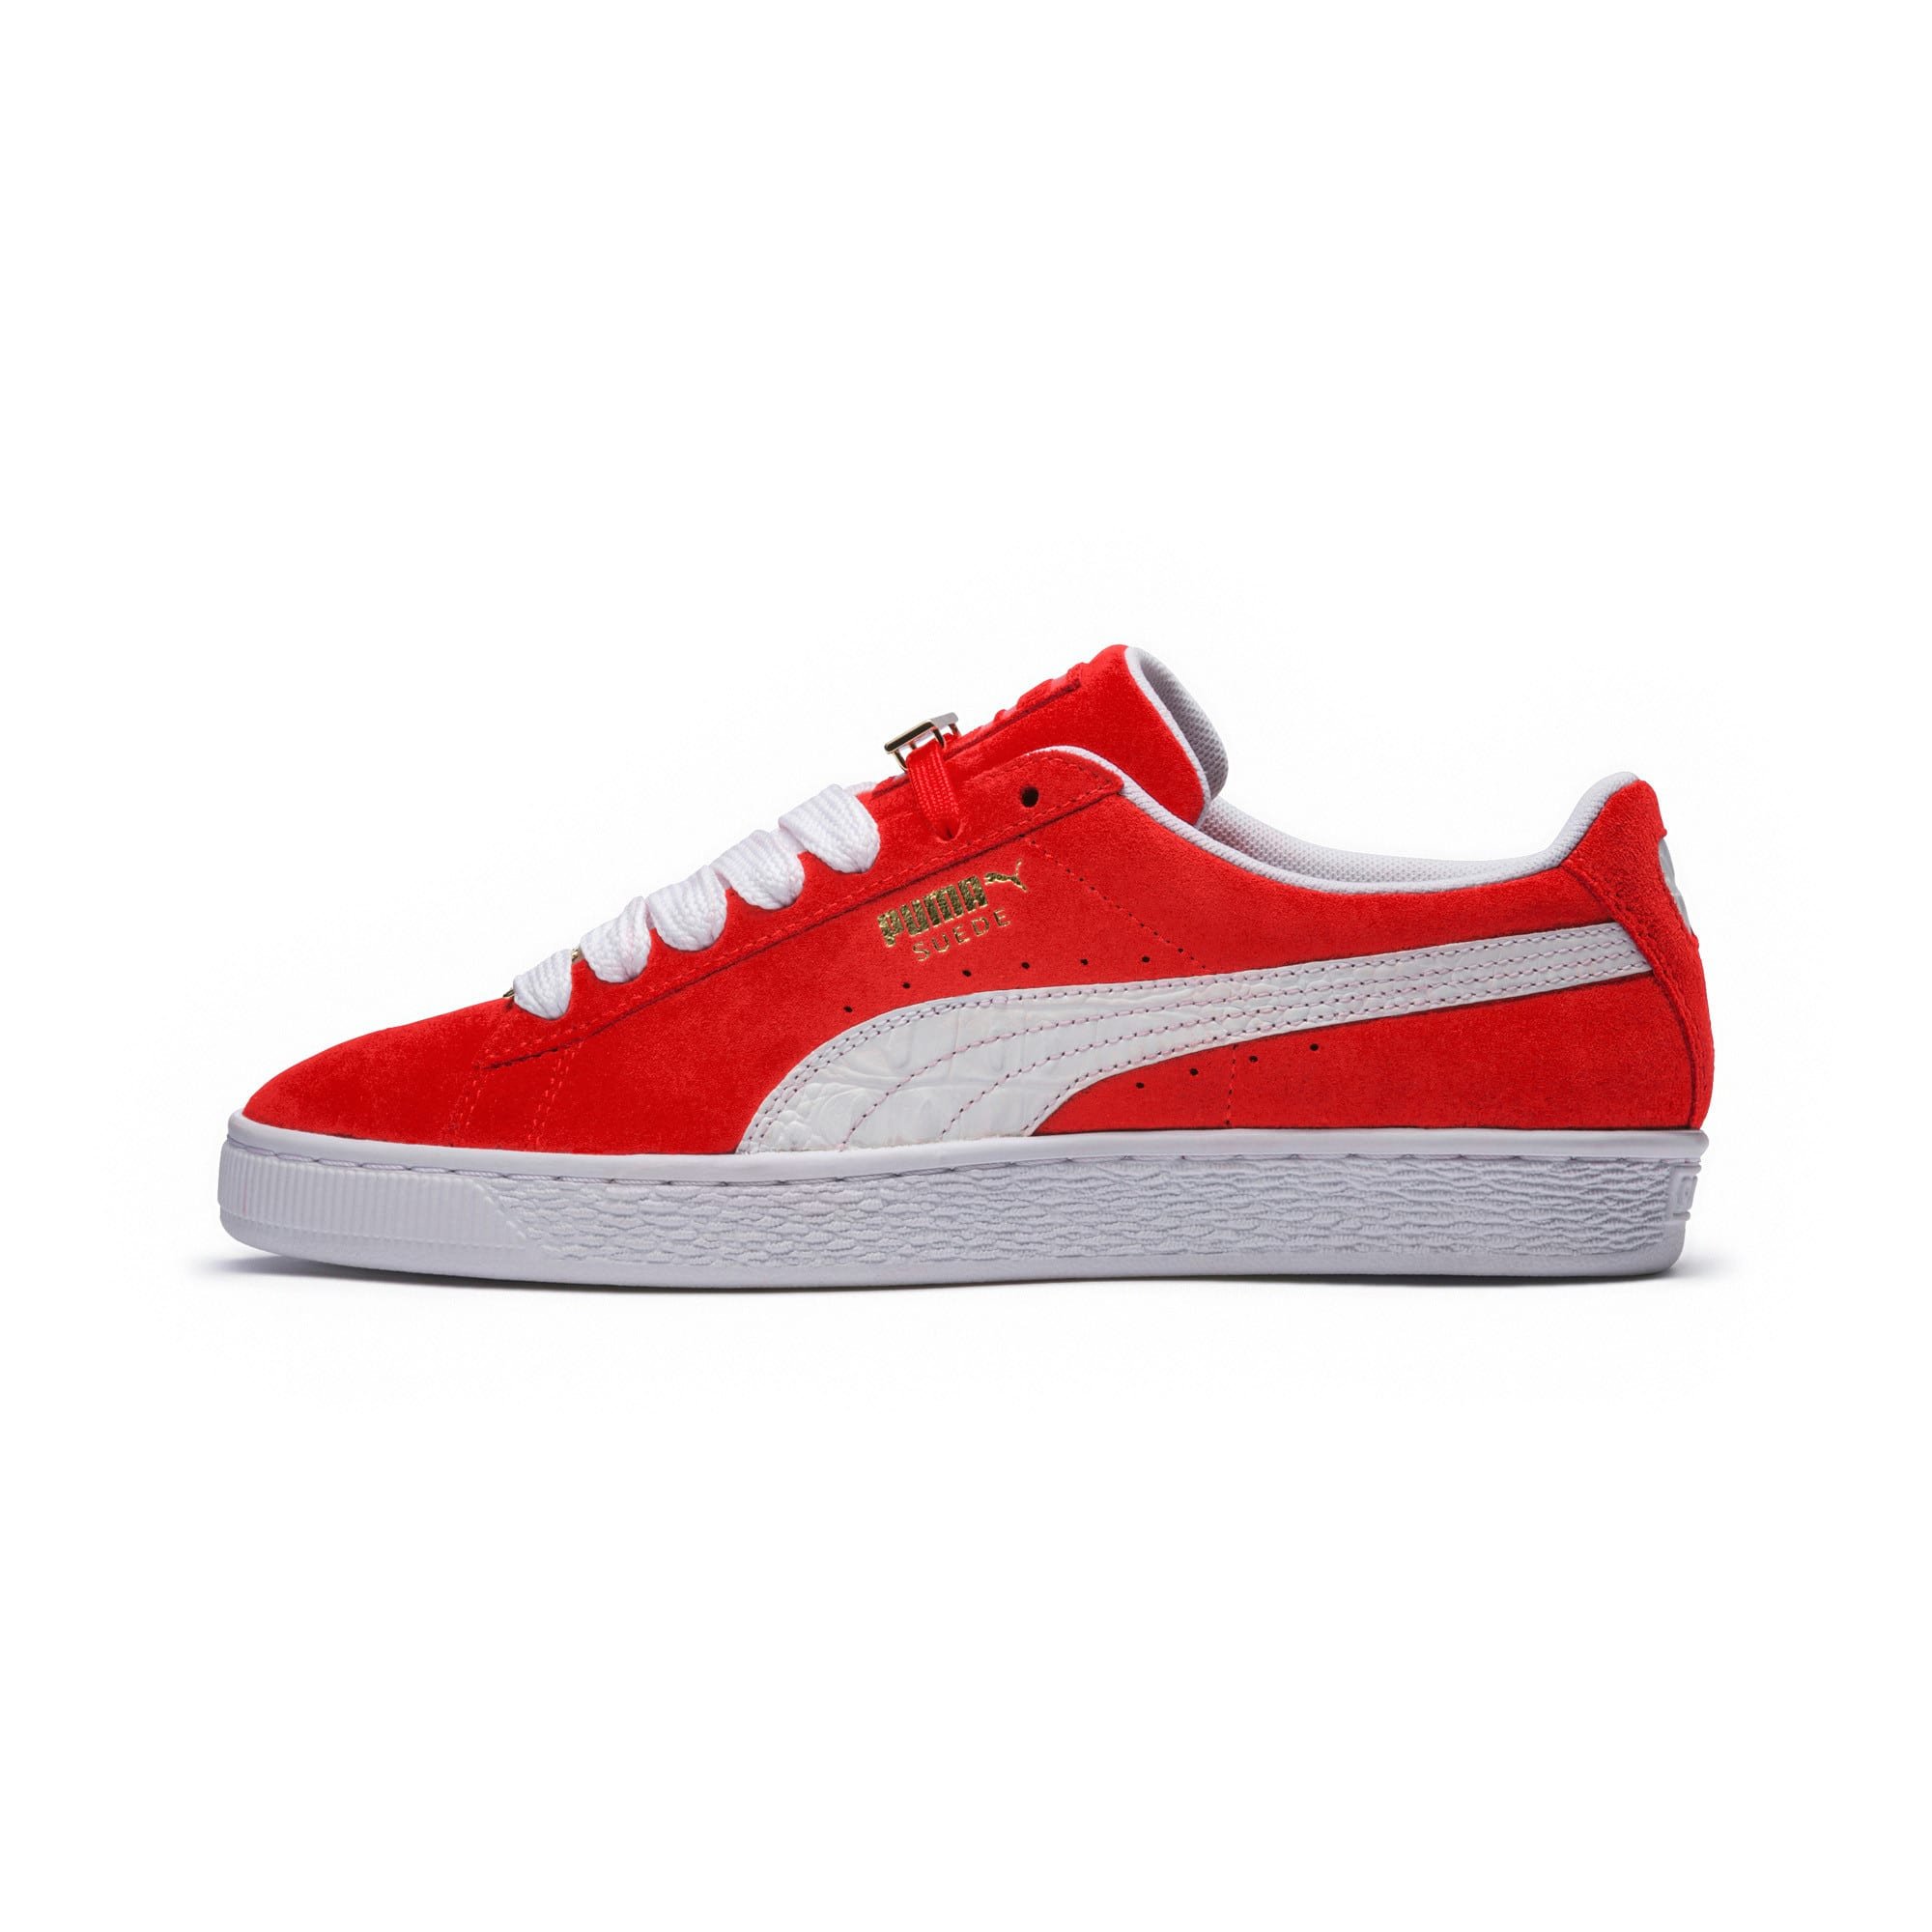 Thumbnail 6 of Suede Classic B-BOY Fabulous Trainers, Flame Scarlet-Puma White, medium-IND